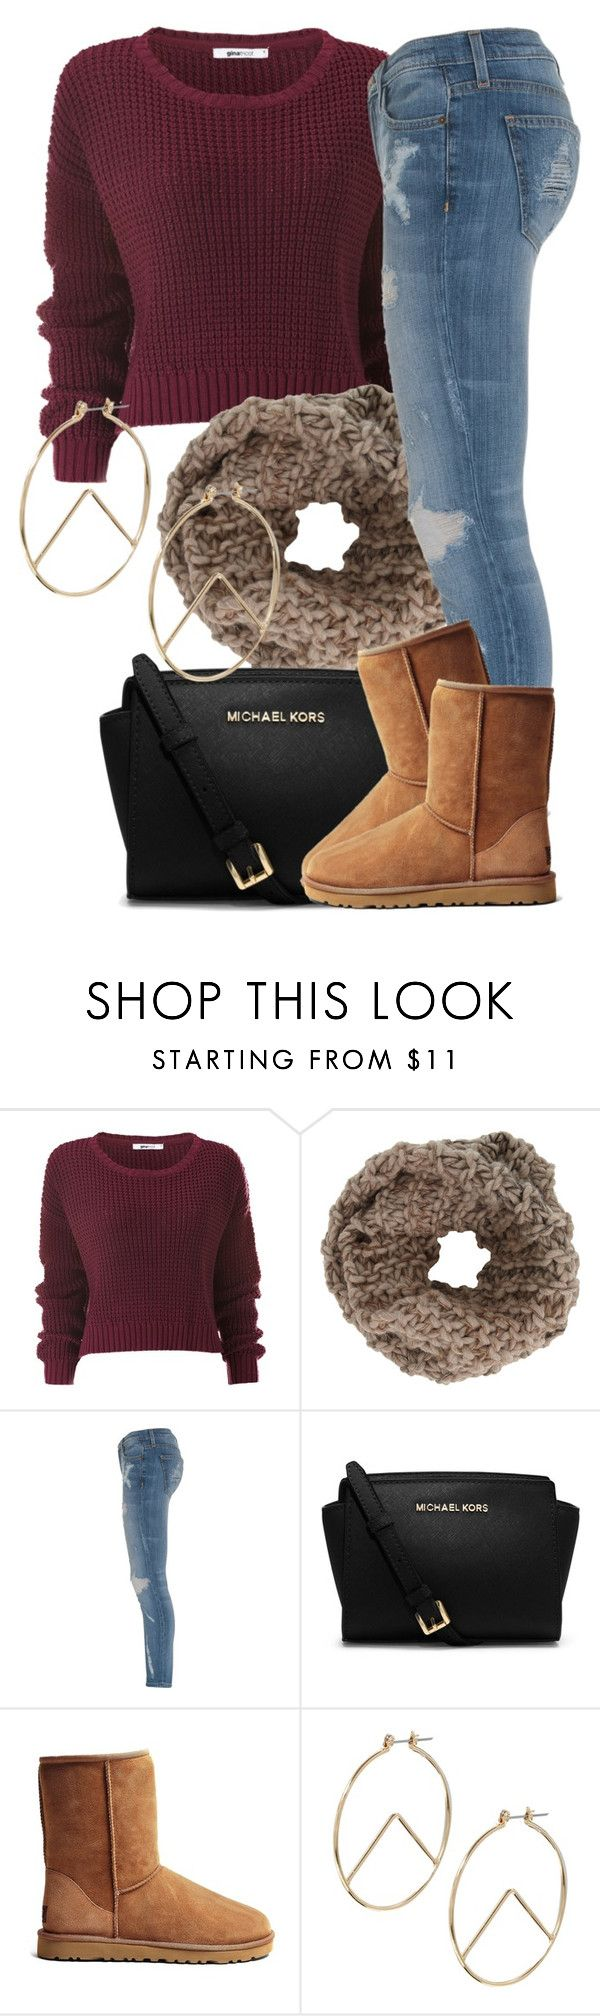 Fall Set - 08/26/14 by nasirkami ❤ liked on Polyvore featuring Anna Kula, Current/Elliott, Michael Kors, UGG Australia and ASOS